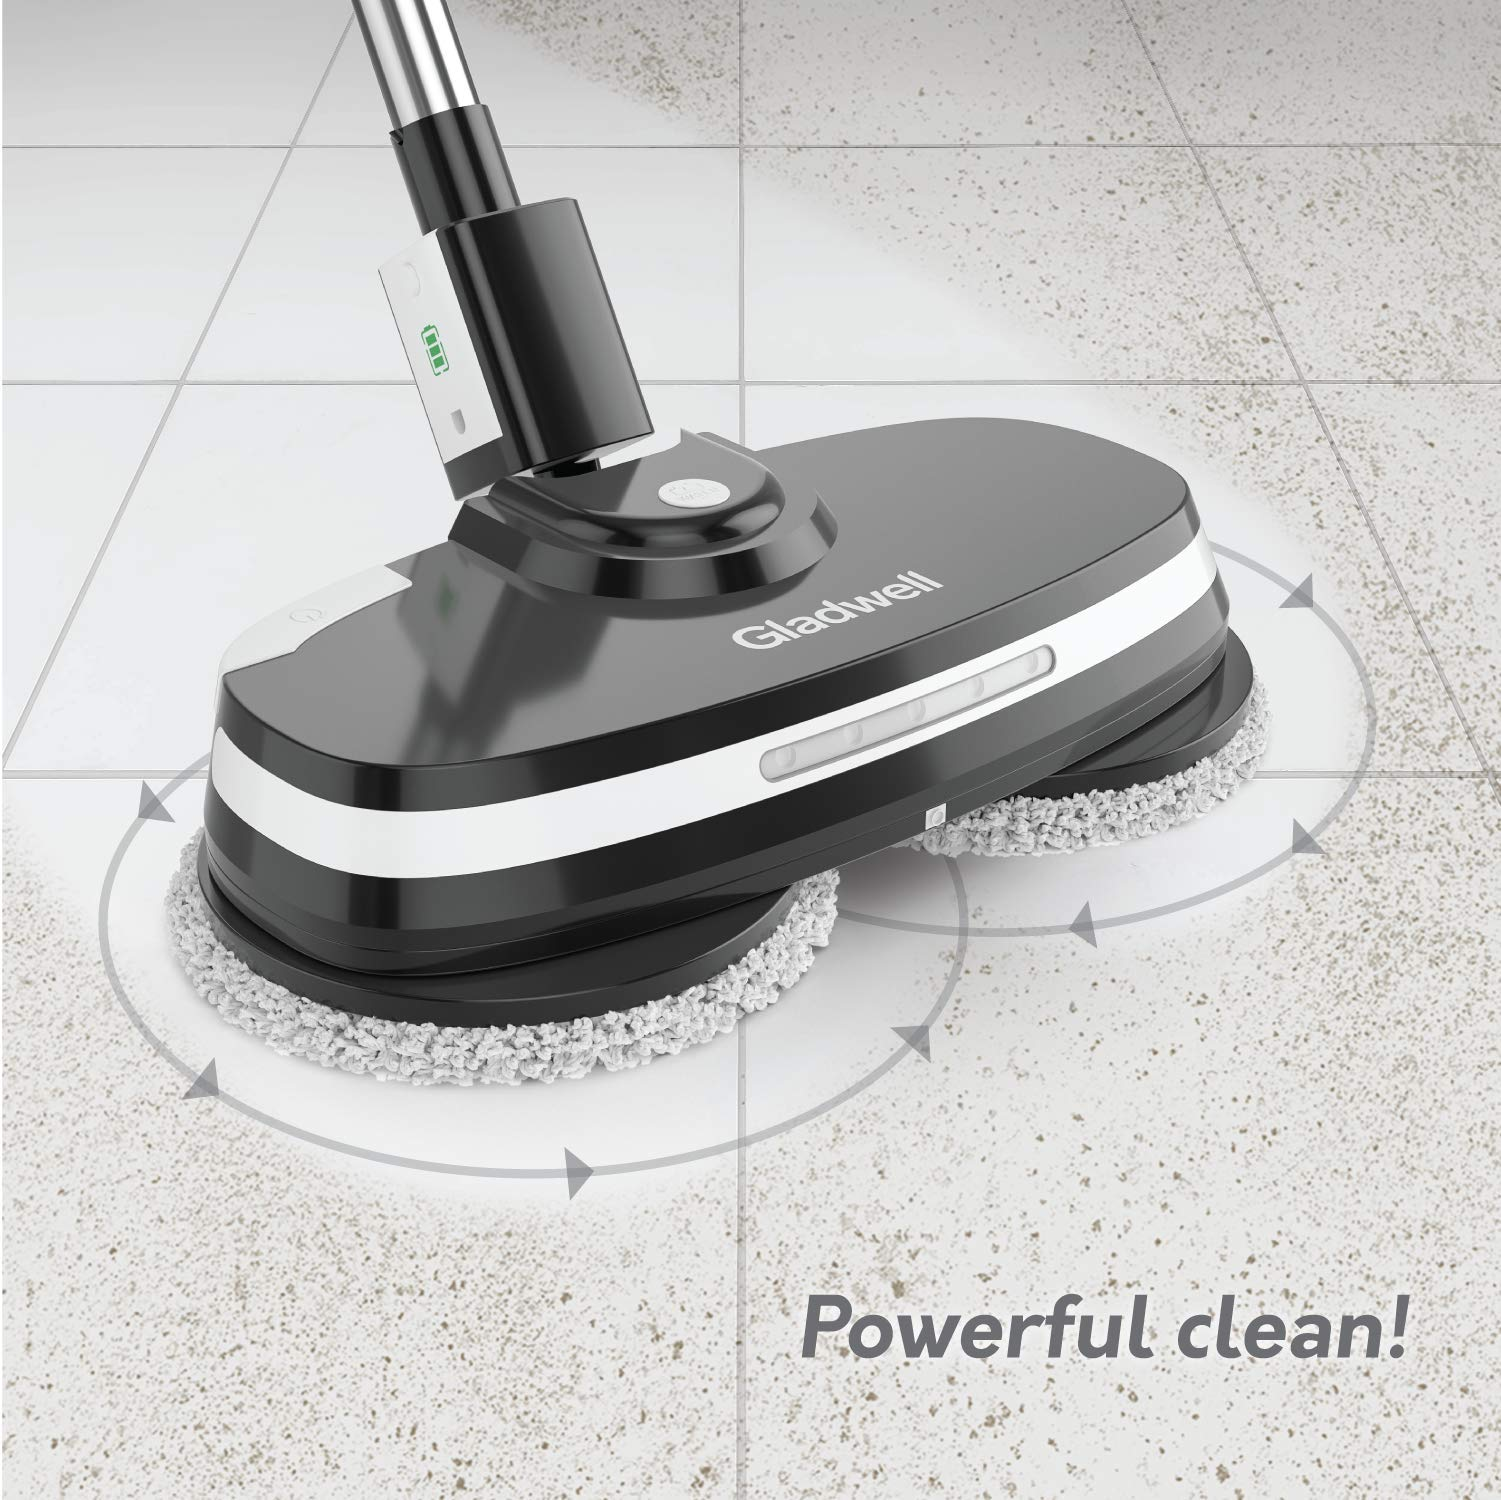 Gladwell Cordless Electric Mop - 3 In 1 Spinner, Scrubber, Waxer Quiet, Powerful Cleaner Spin Scrubber & Buffer, Polisher For Hard wood, Tile, Vinyl, Marble, Laminate Floor - 1 Year Warranty - Black by Gladwell (Image #3)